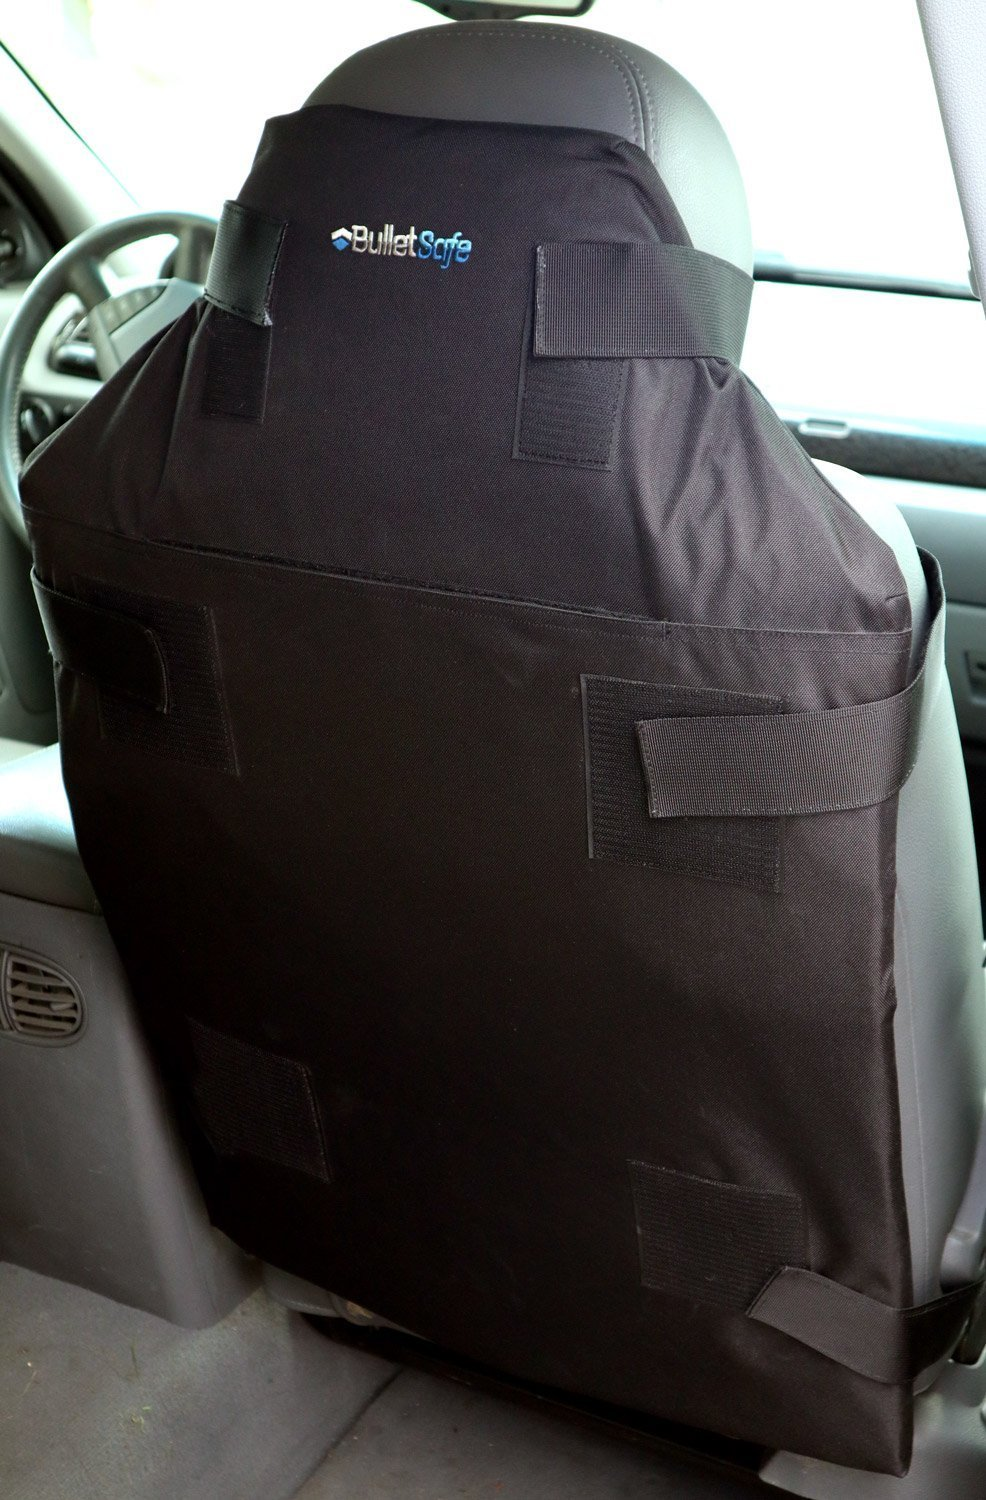 Protecto Panel attached at the back of a car seat